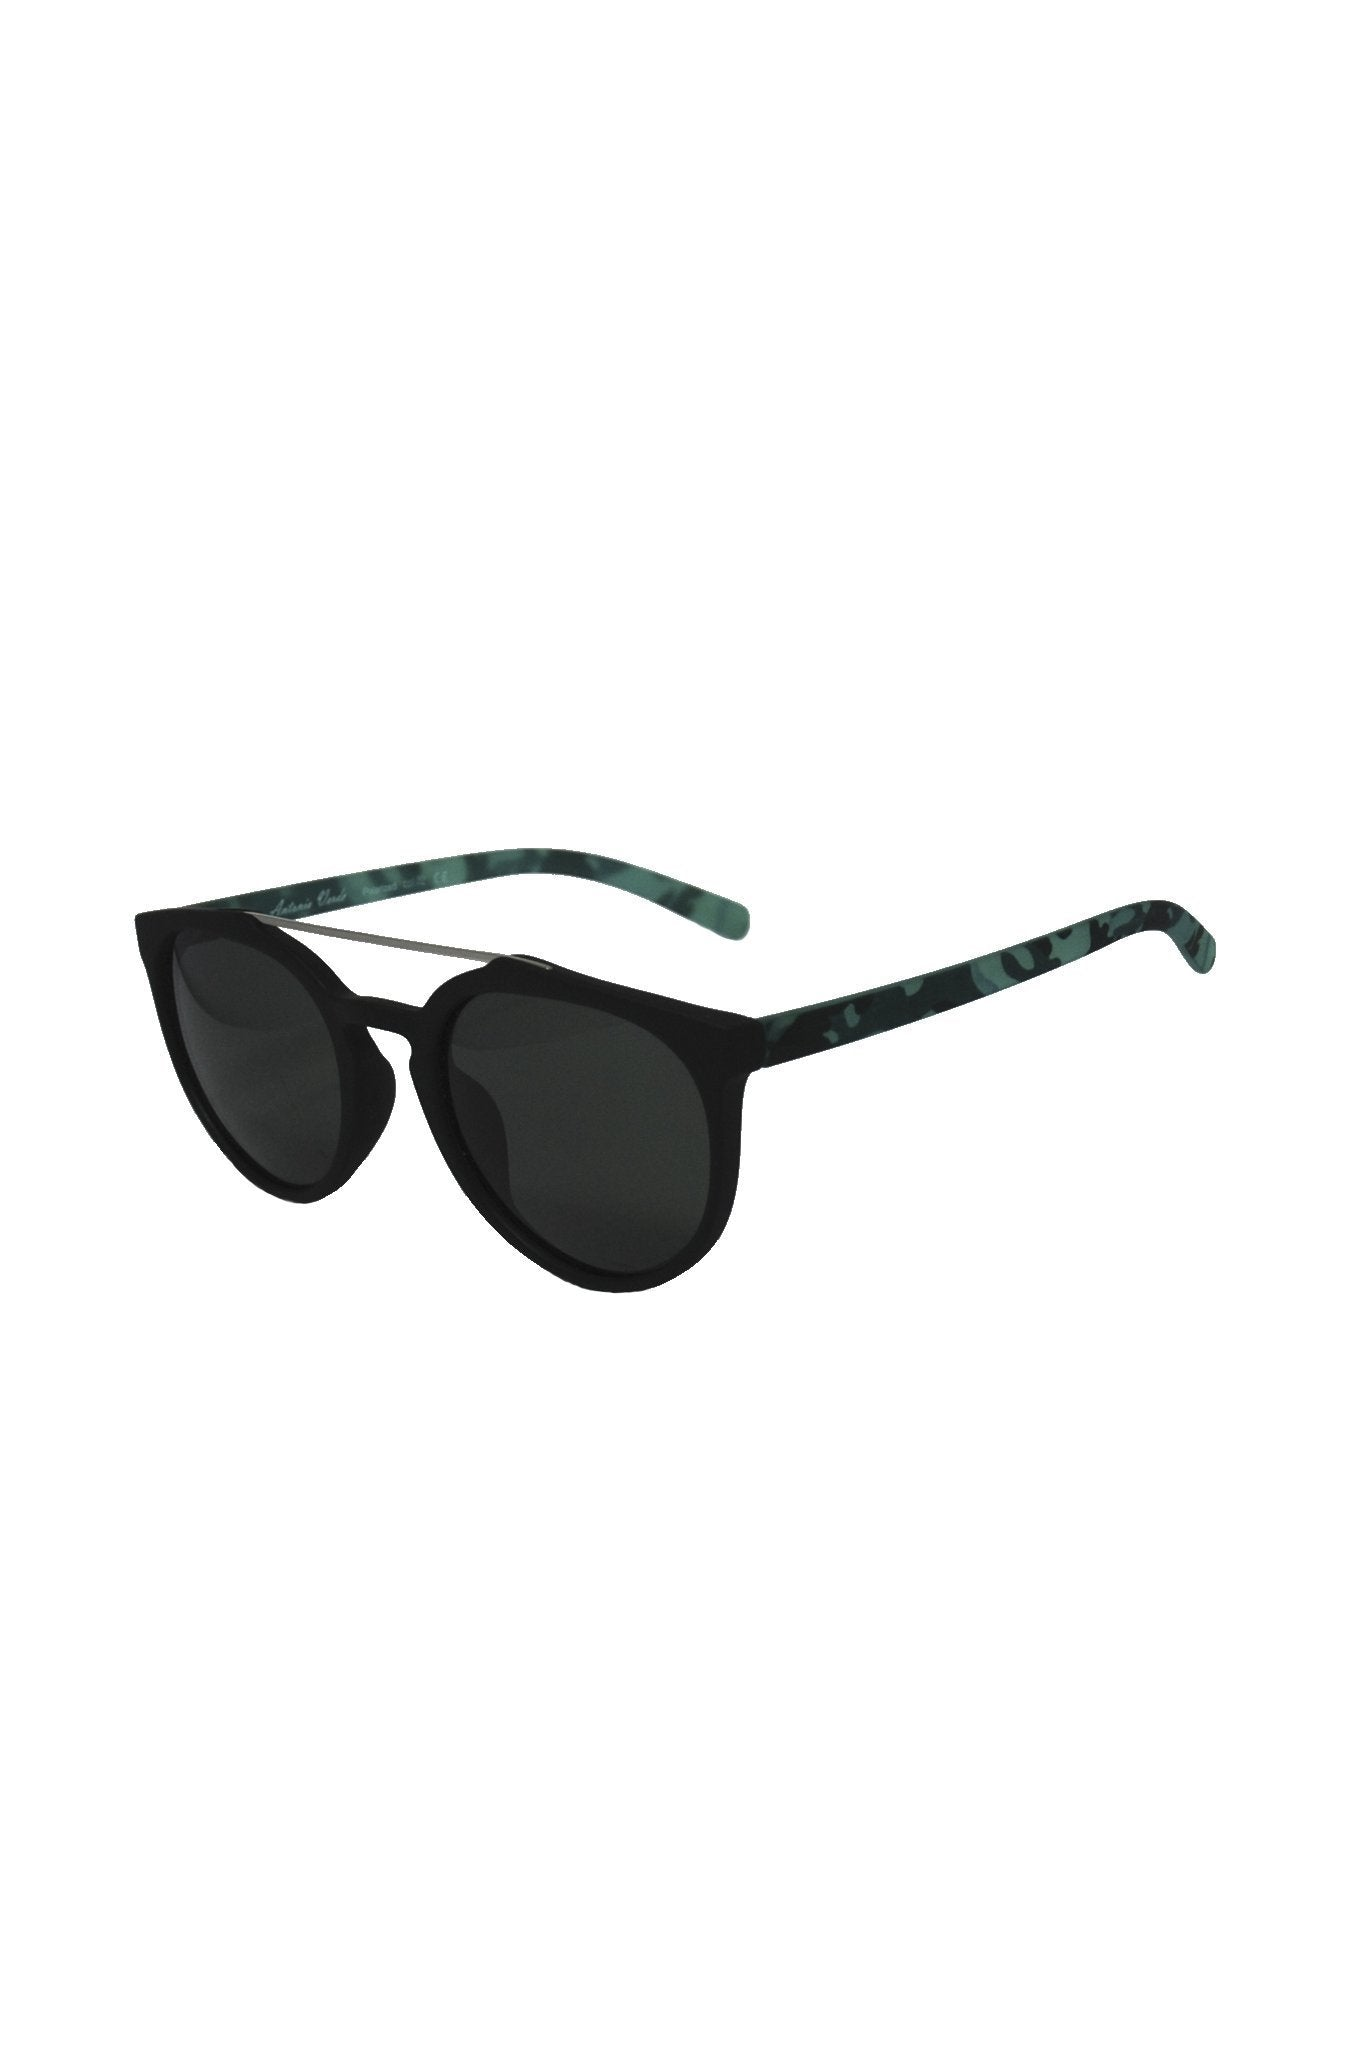 Sunglasses - ZARAGOZA Black Eco Sunglasses By Antonio Verde